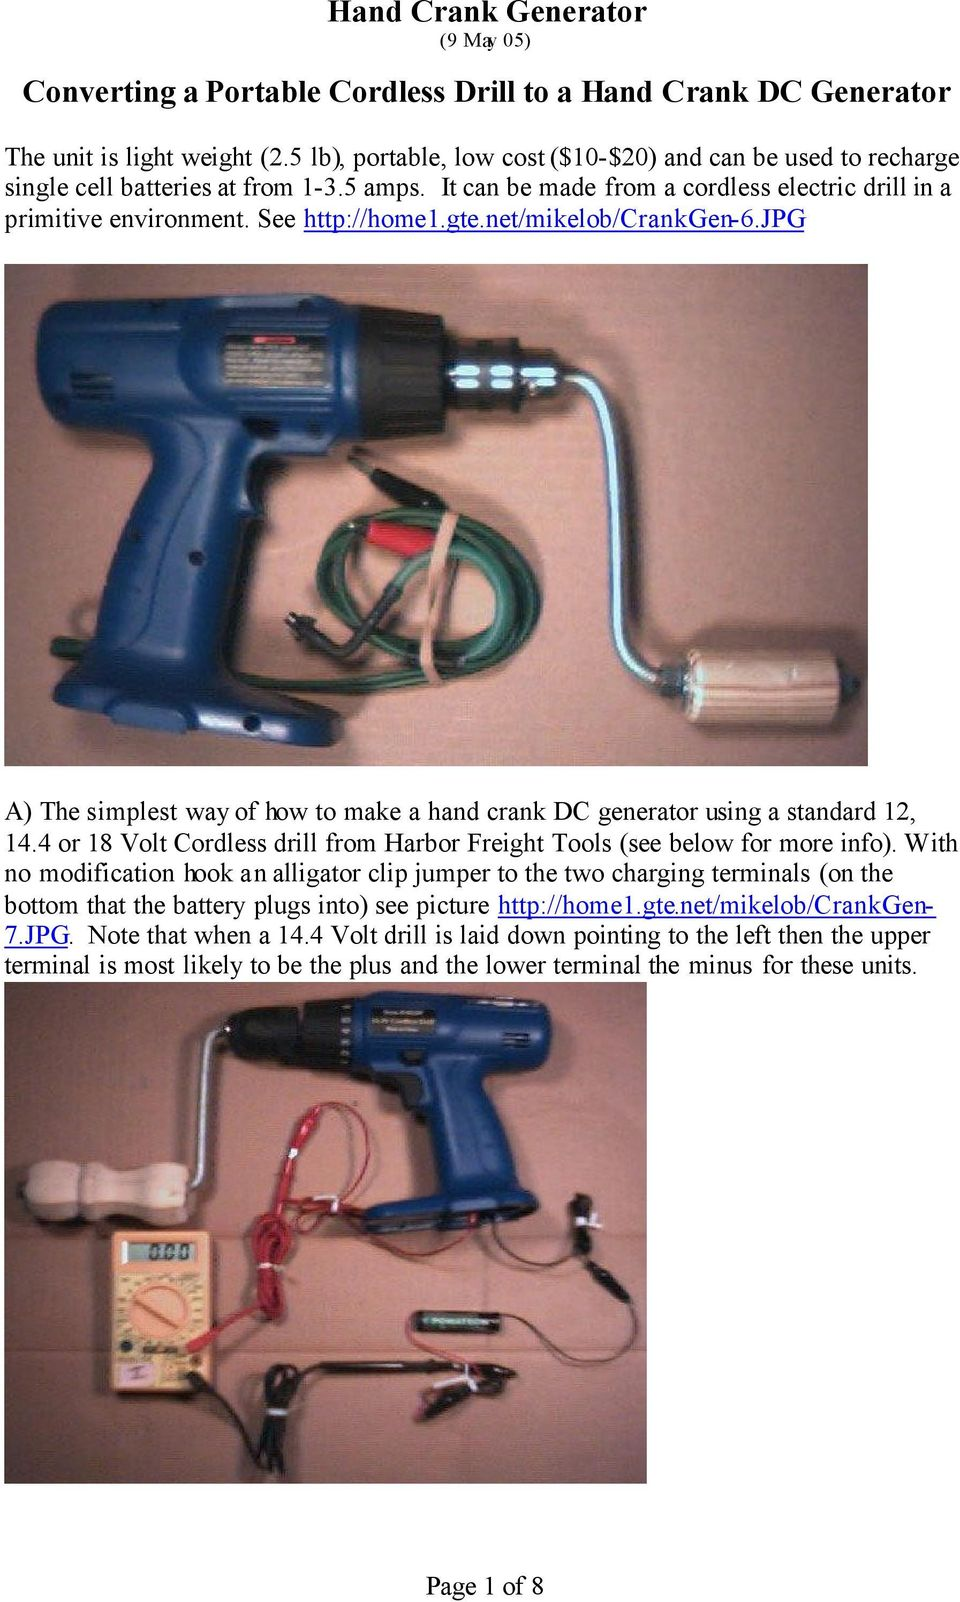 jpg A) The simplest way of how to make a hand crank DC generator using a standard 12, 14.4 or 18 Volt Cordless drill from Harbor Freight Tools (see below for more info).